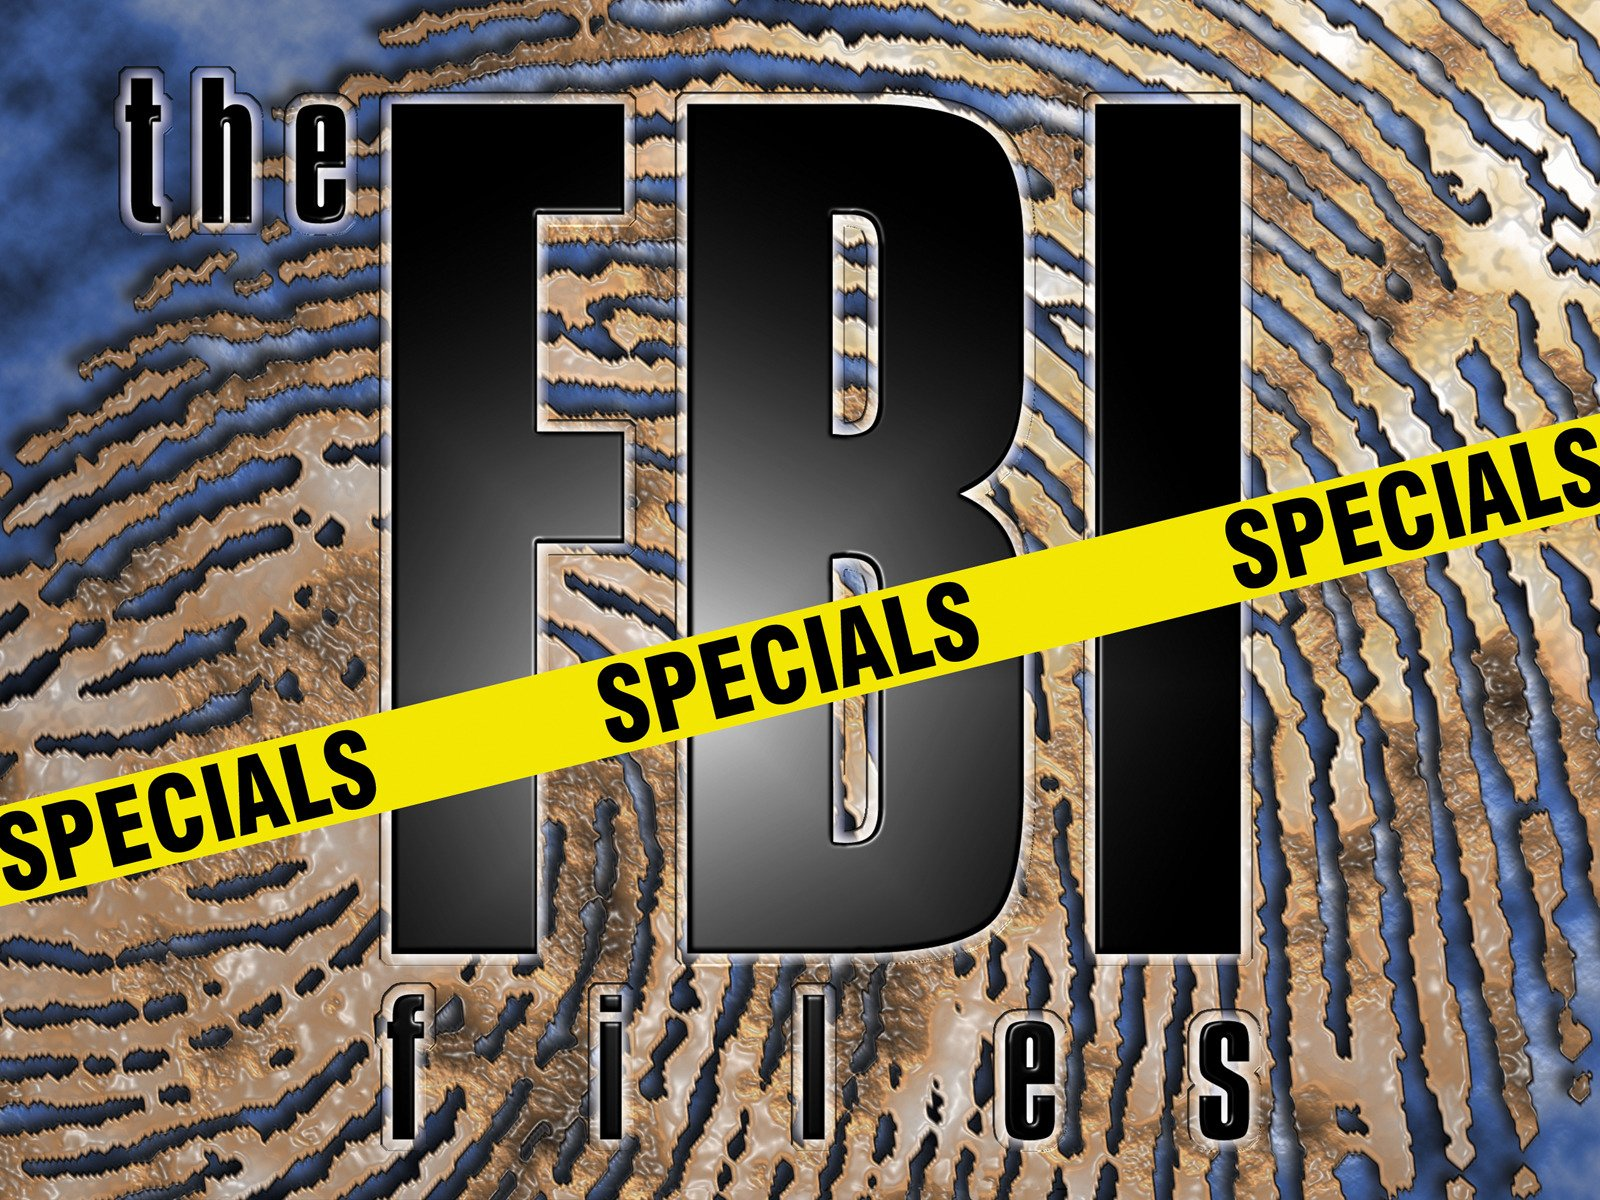 The F.B.I. Files Specials - Season 1